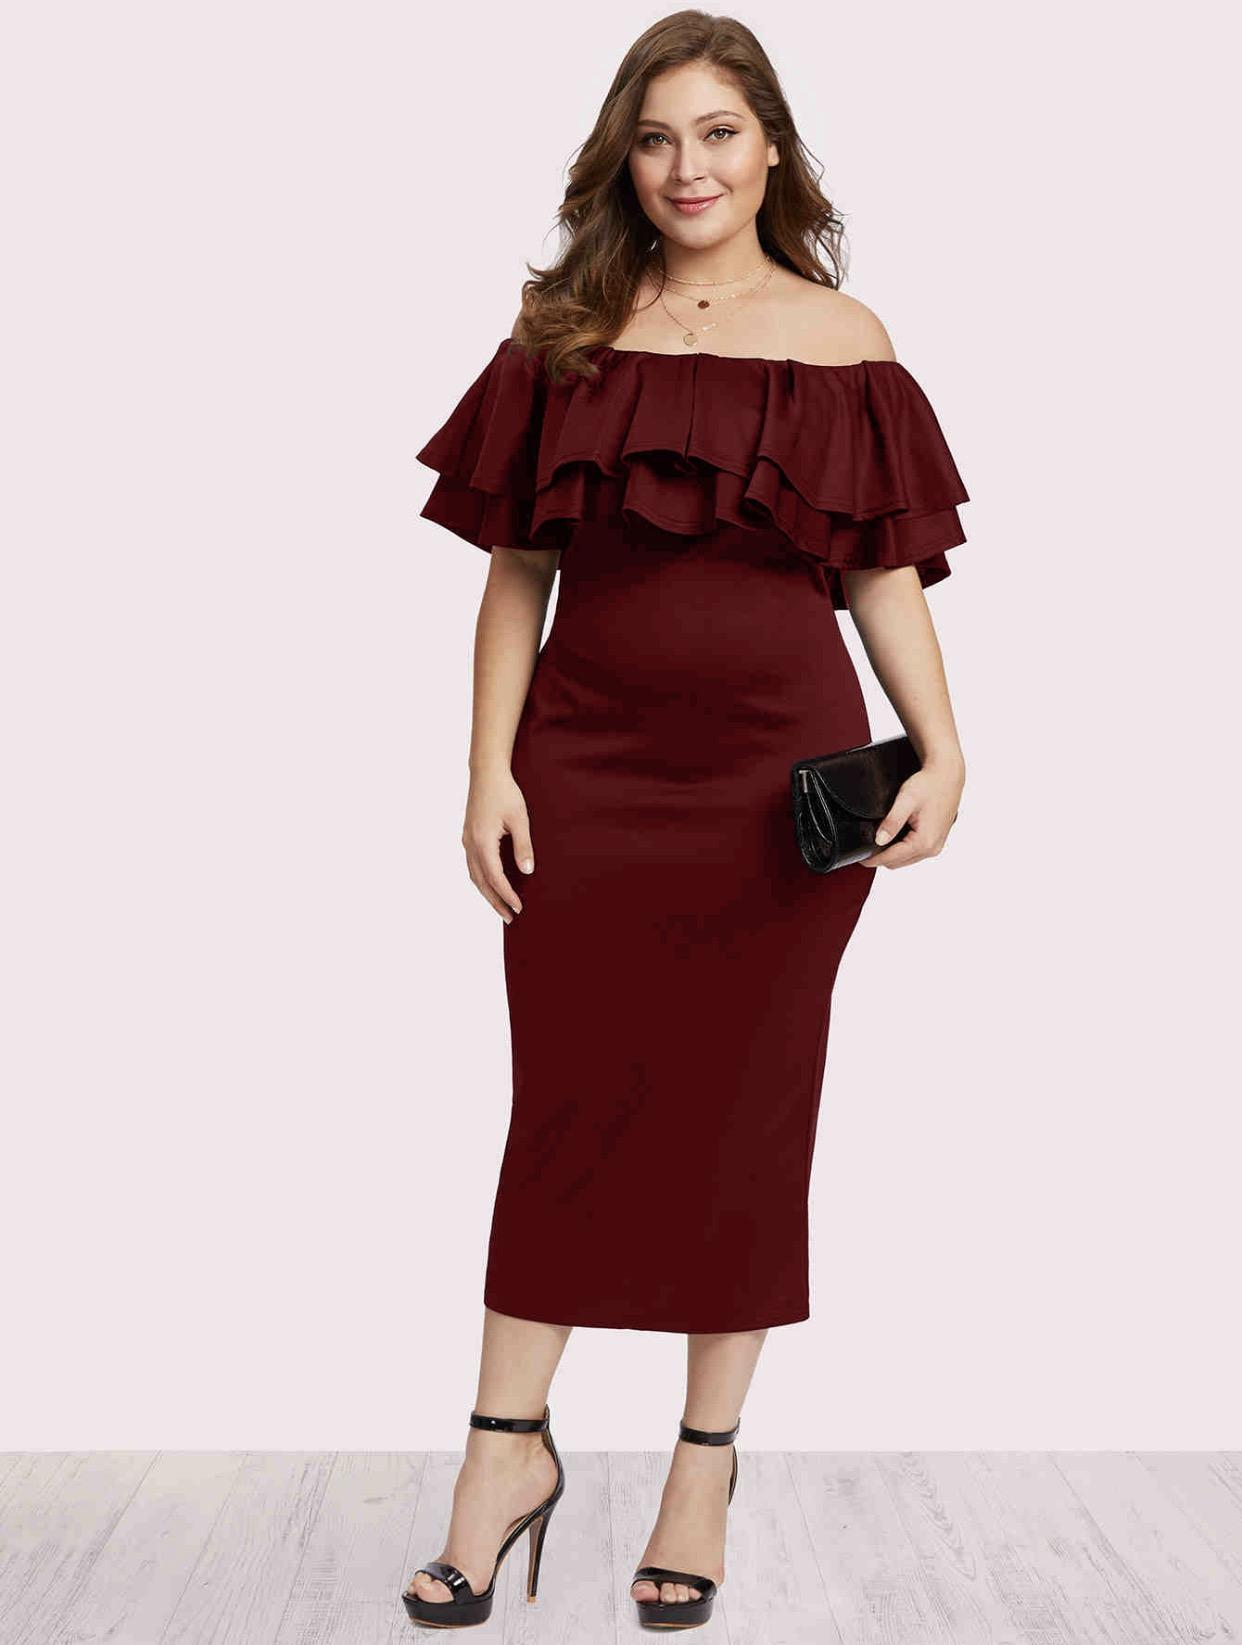 77cff9b488ca3 Plus Size Dresses for sale - Plus Size Maxi Dress Online Deals ...